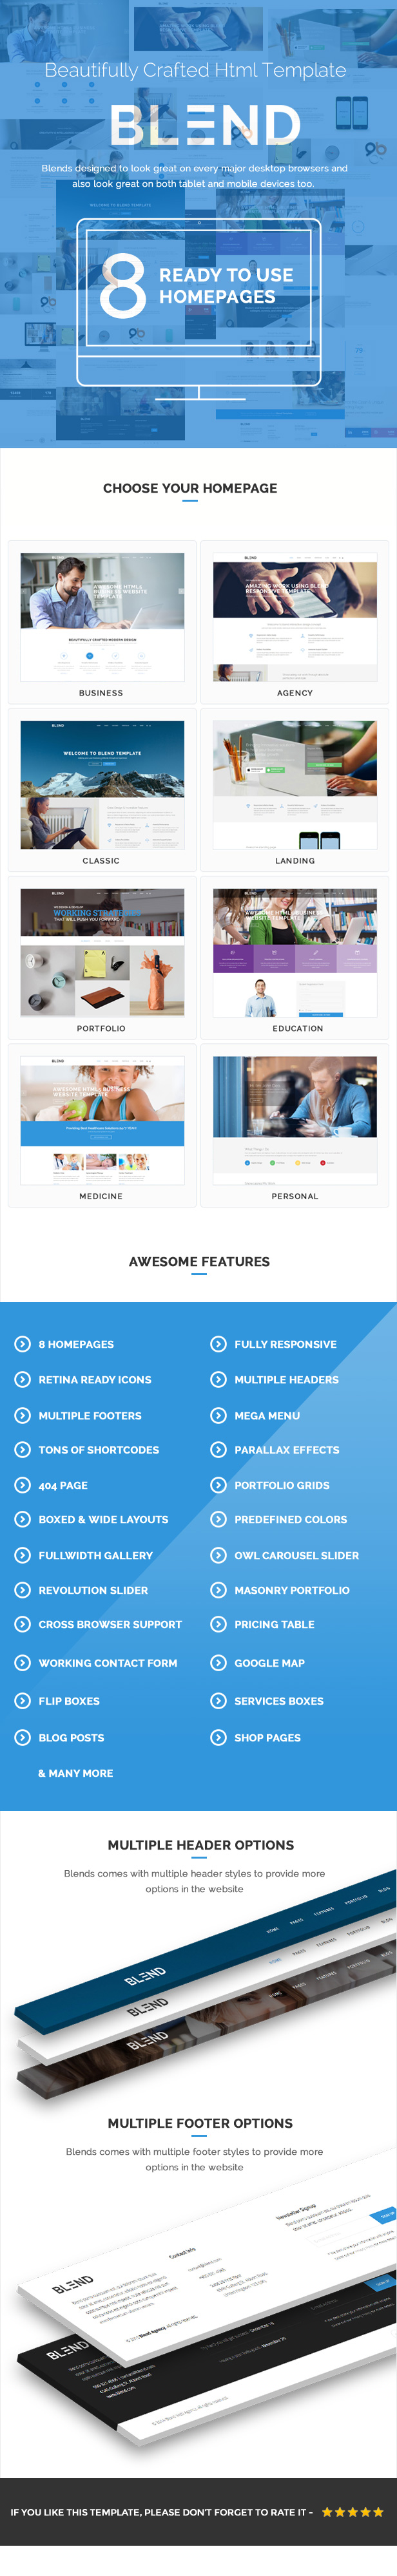 Blend - Multi-Purpose Responsive Website Template - 3